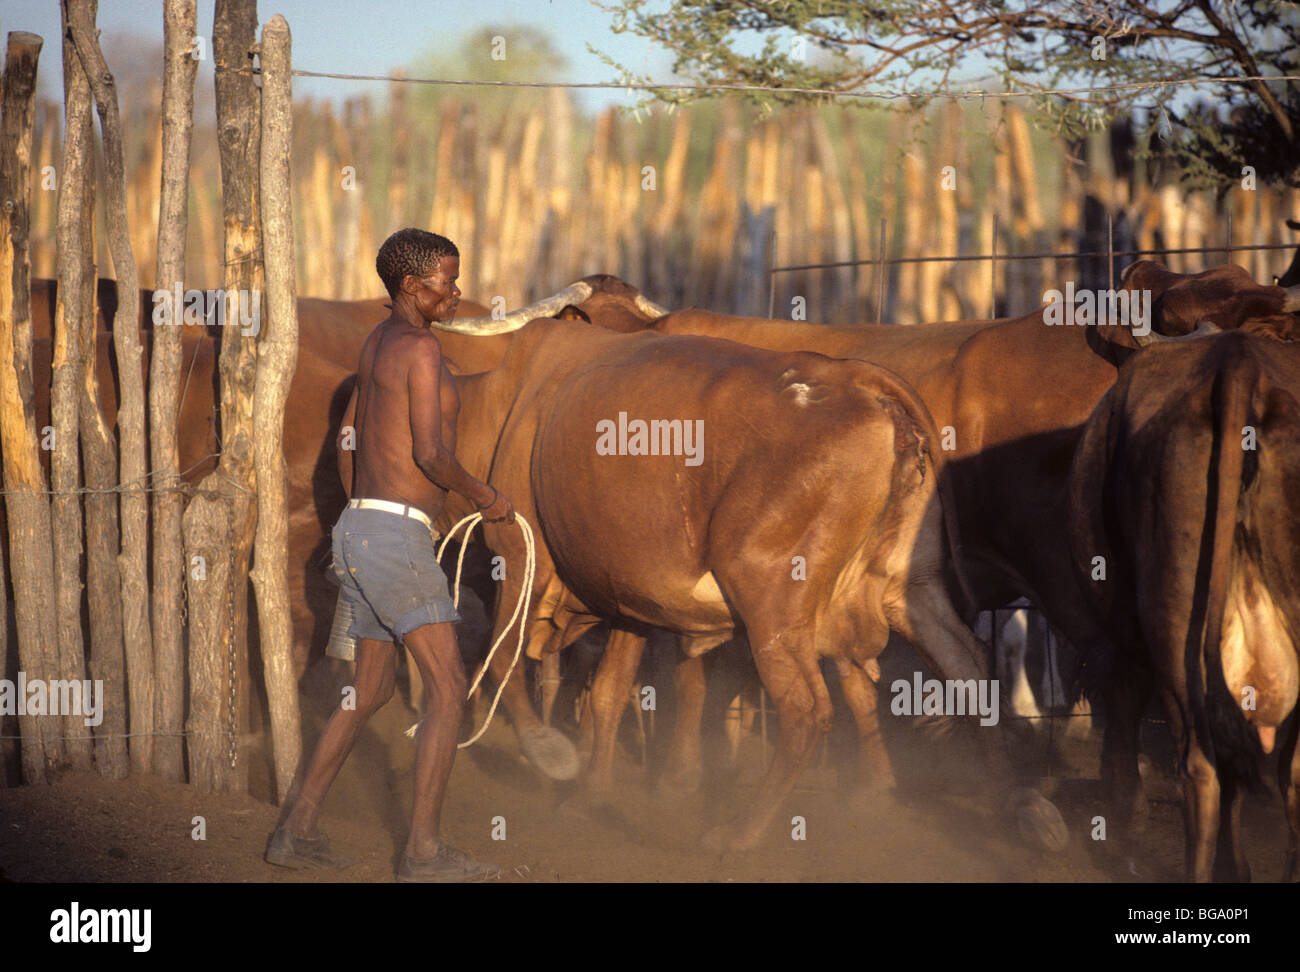 A San Bushman herding his cattle into a Kraal, Tchumkwe, - Stock Image